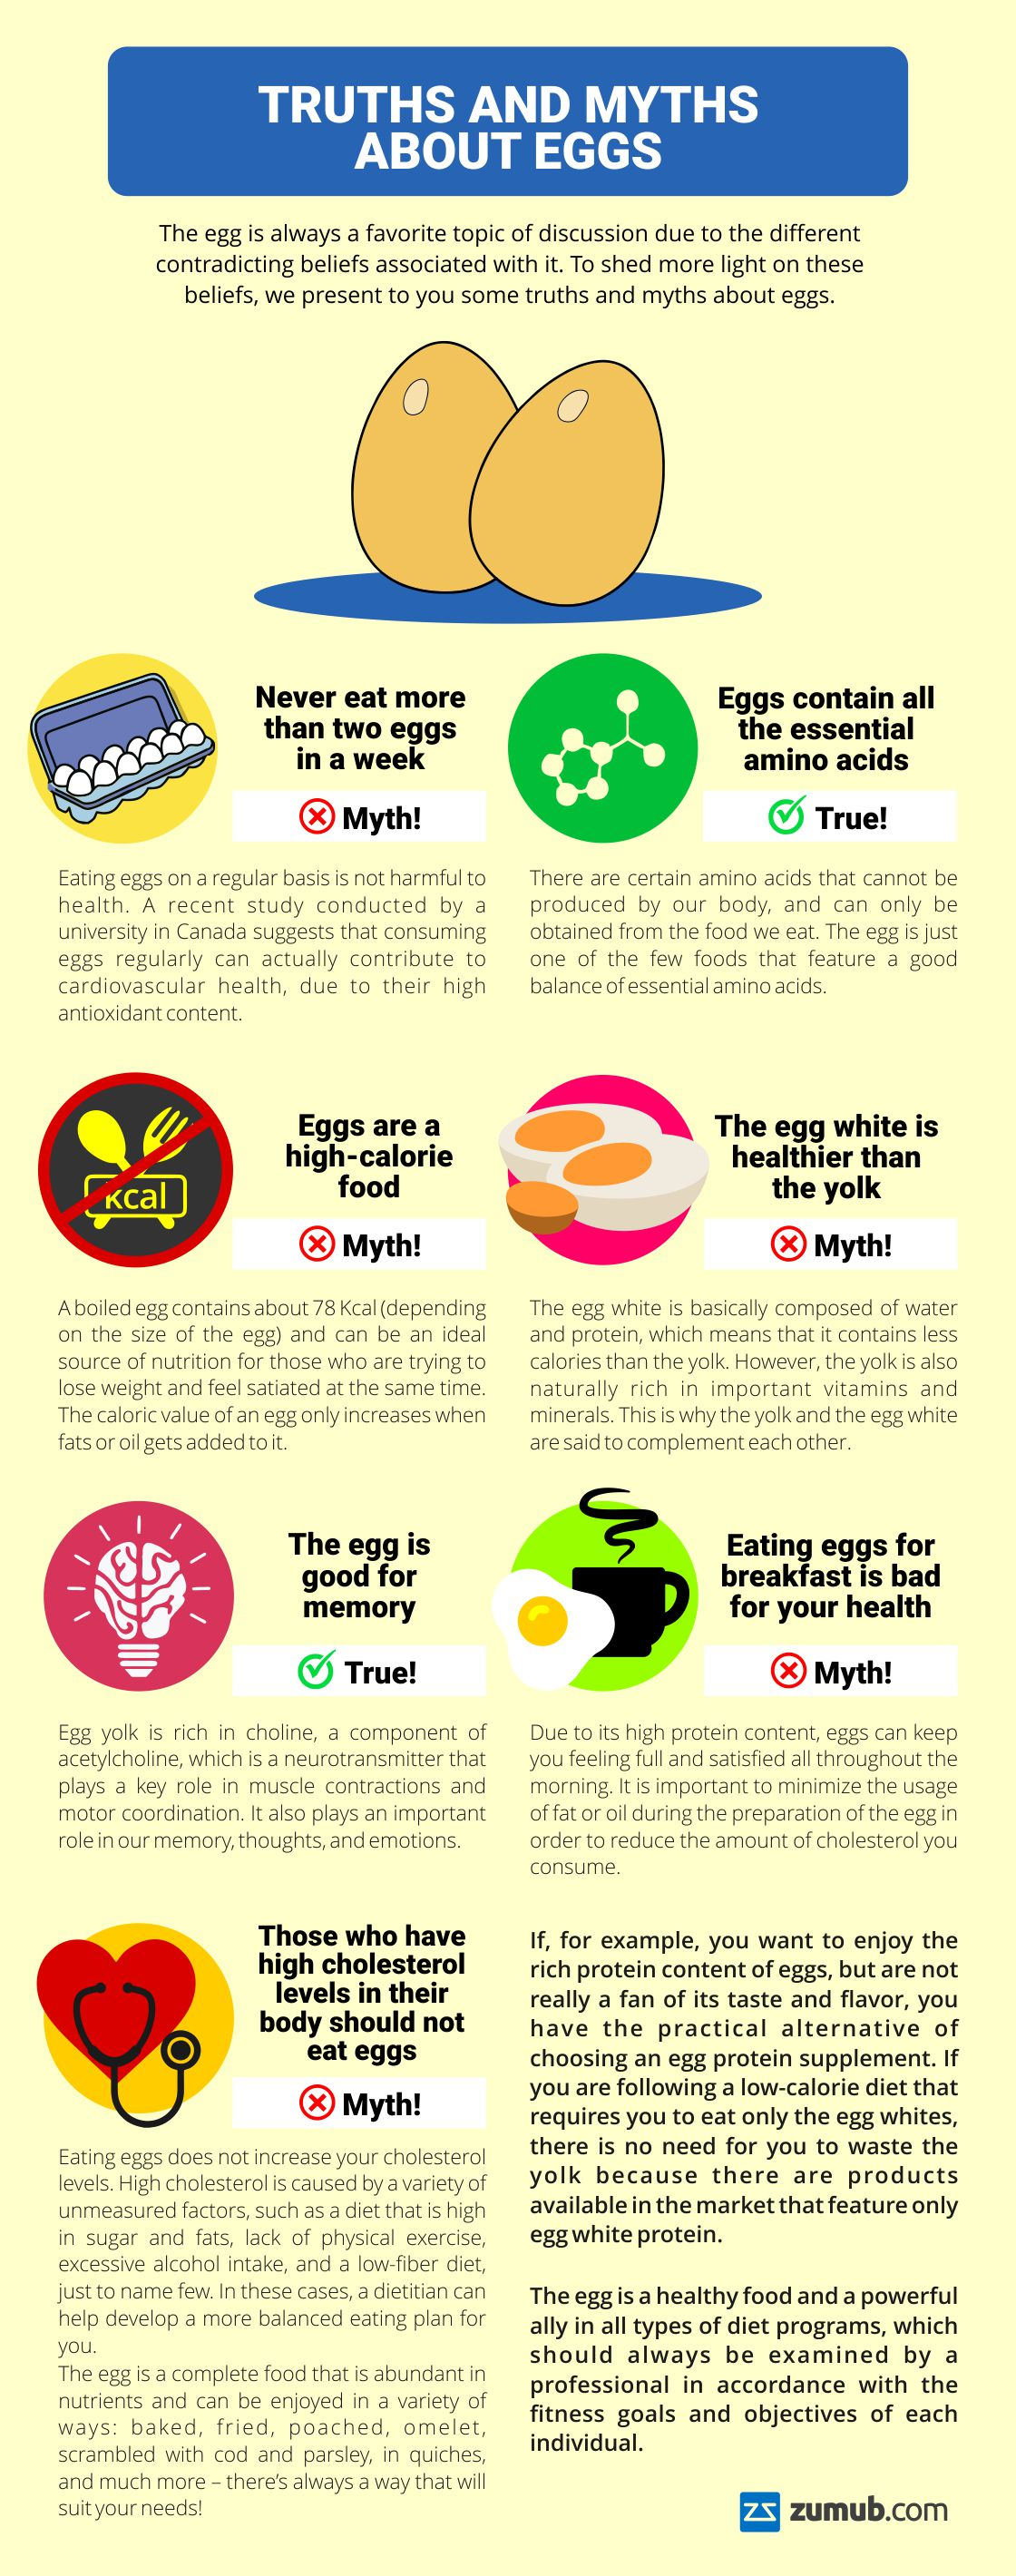 Debunking the Myths and Exploring the Truths Related To Eggs